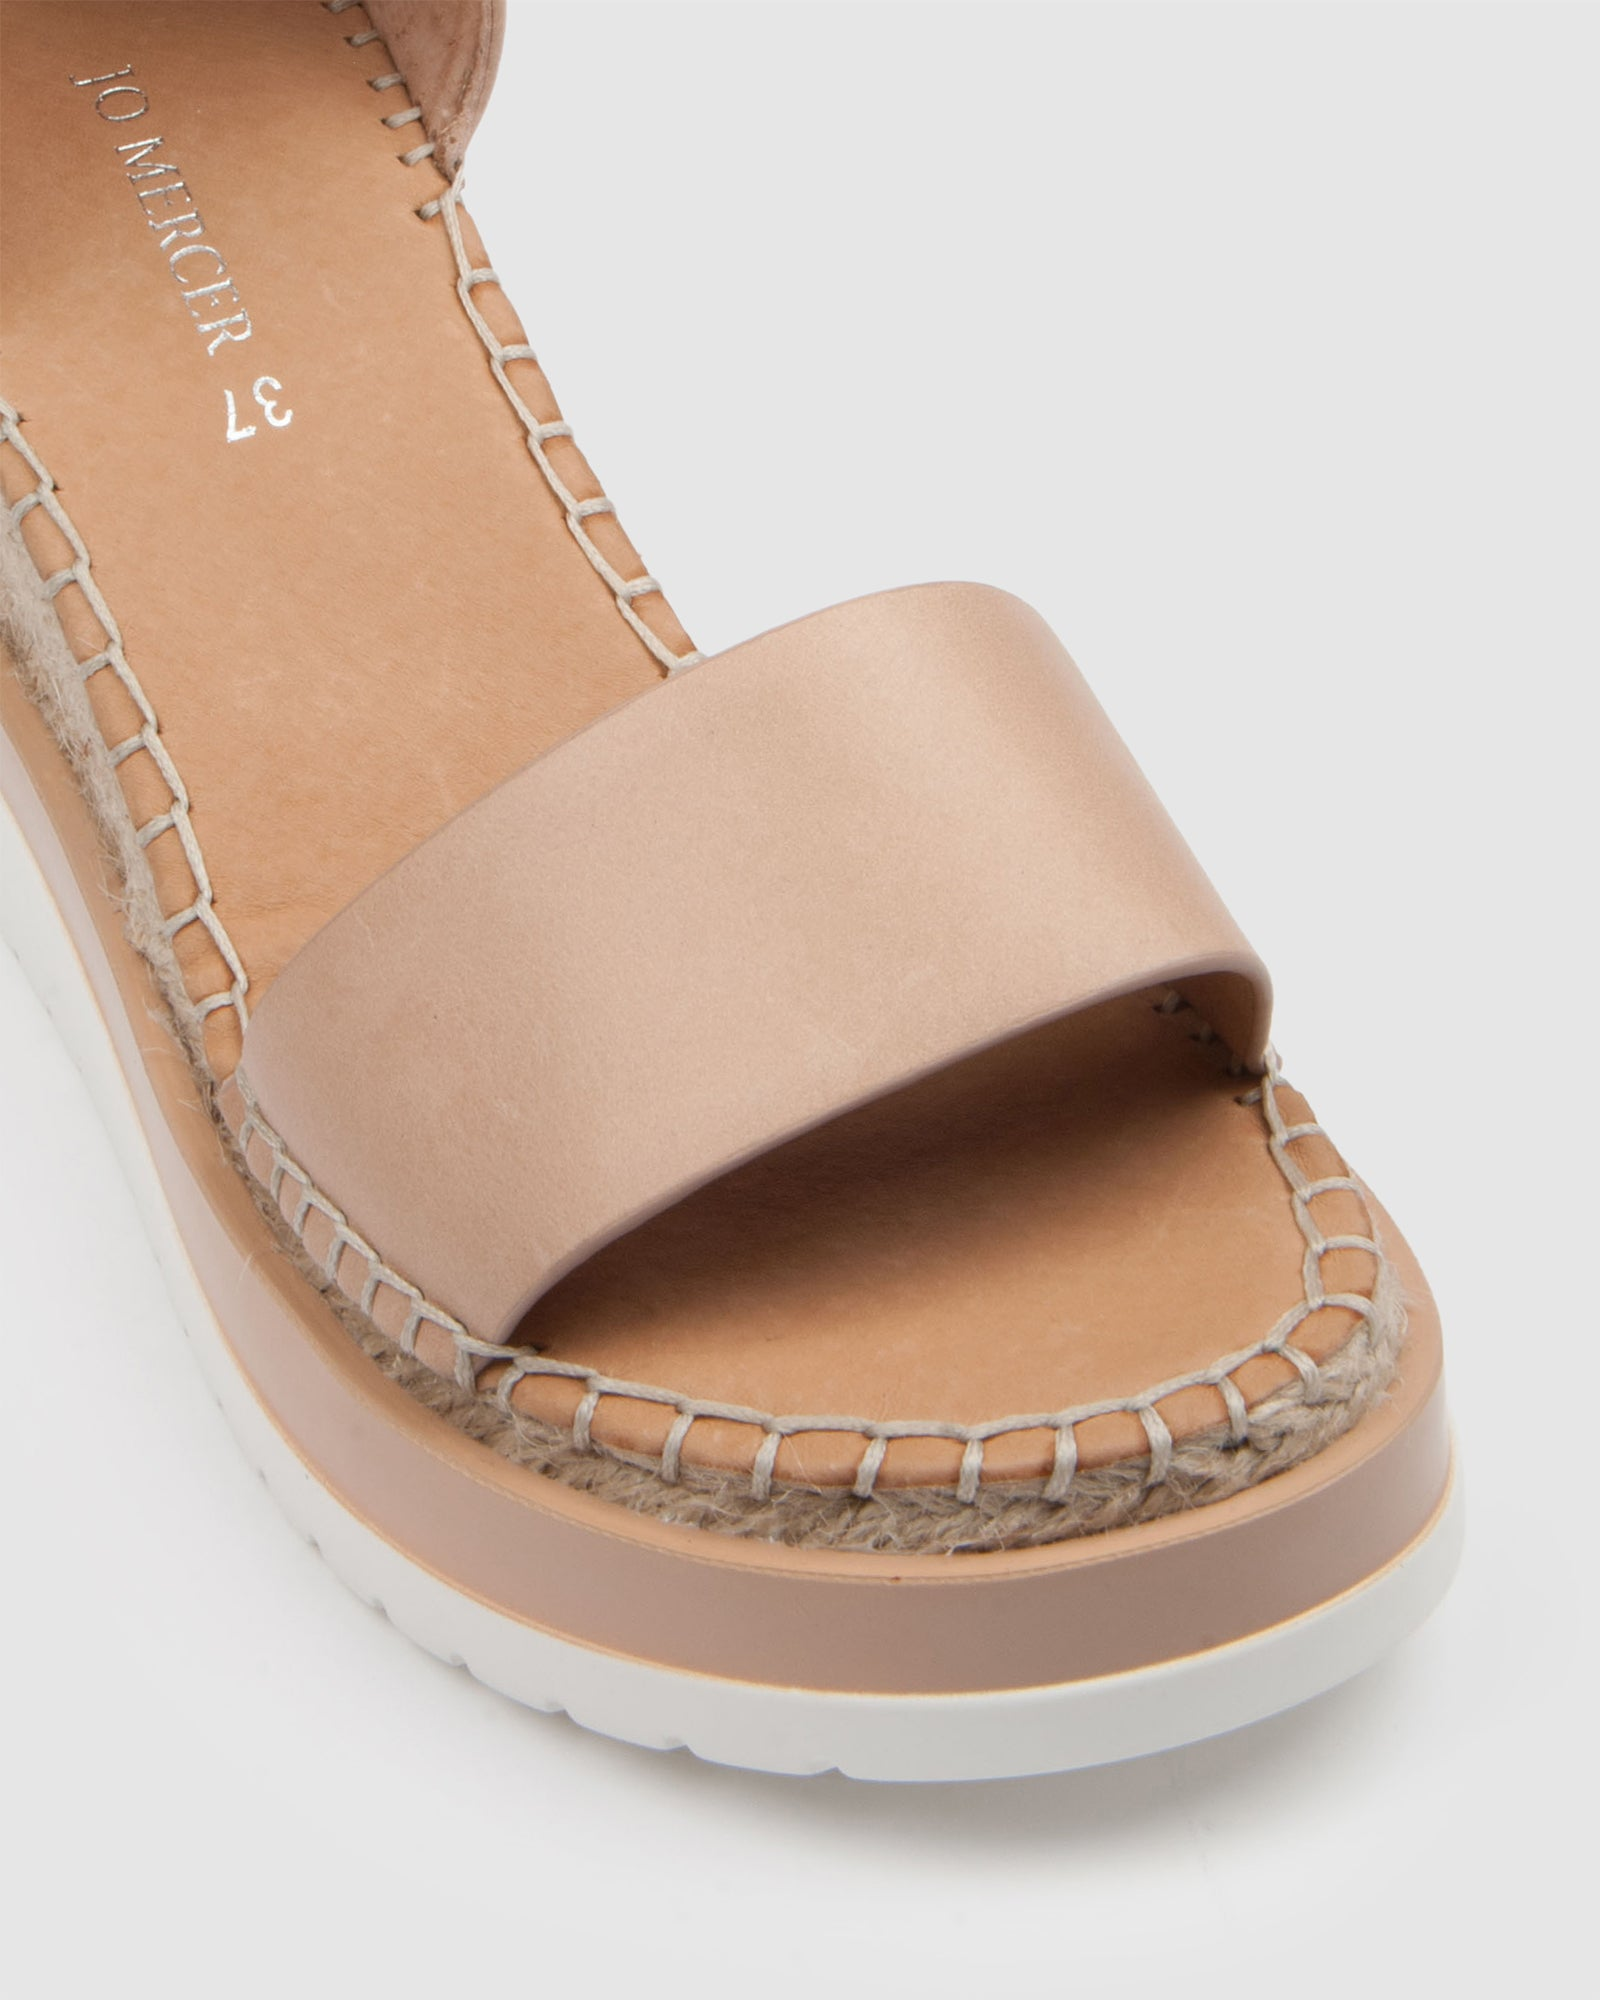 KLUME MID HEEL WEDGE ESPADRILLES NATURAL LEATHER